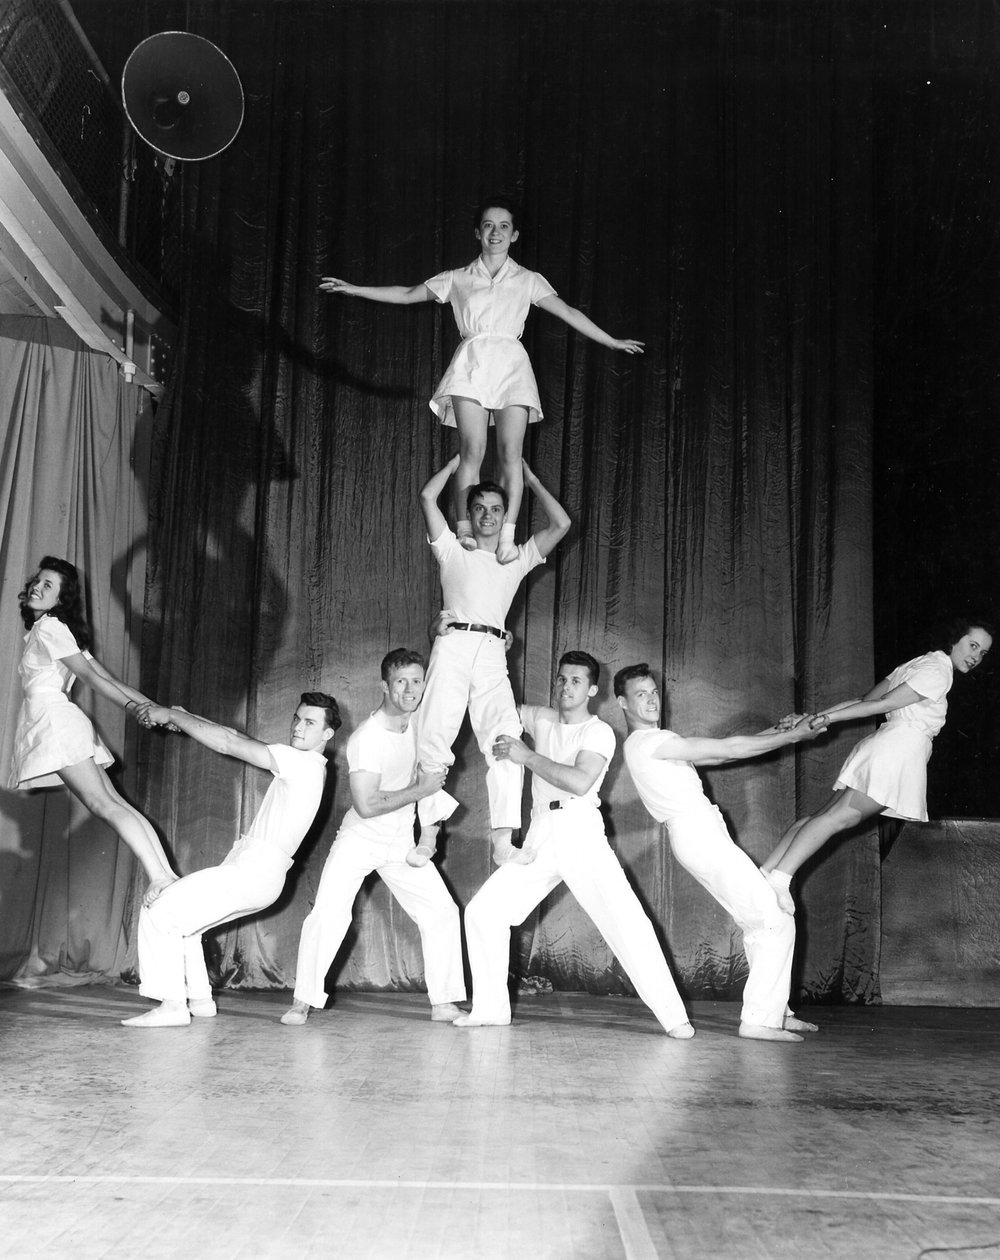 1947 Ground Pyramids left to right top to bottom - Augusta Johnson, Ted Smith, Patsy Welty, Lee Schick, A.C. Moore, William Foland, Wilbur Ehatt, and Peggy Welty.jpg